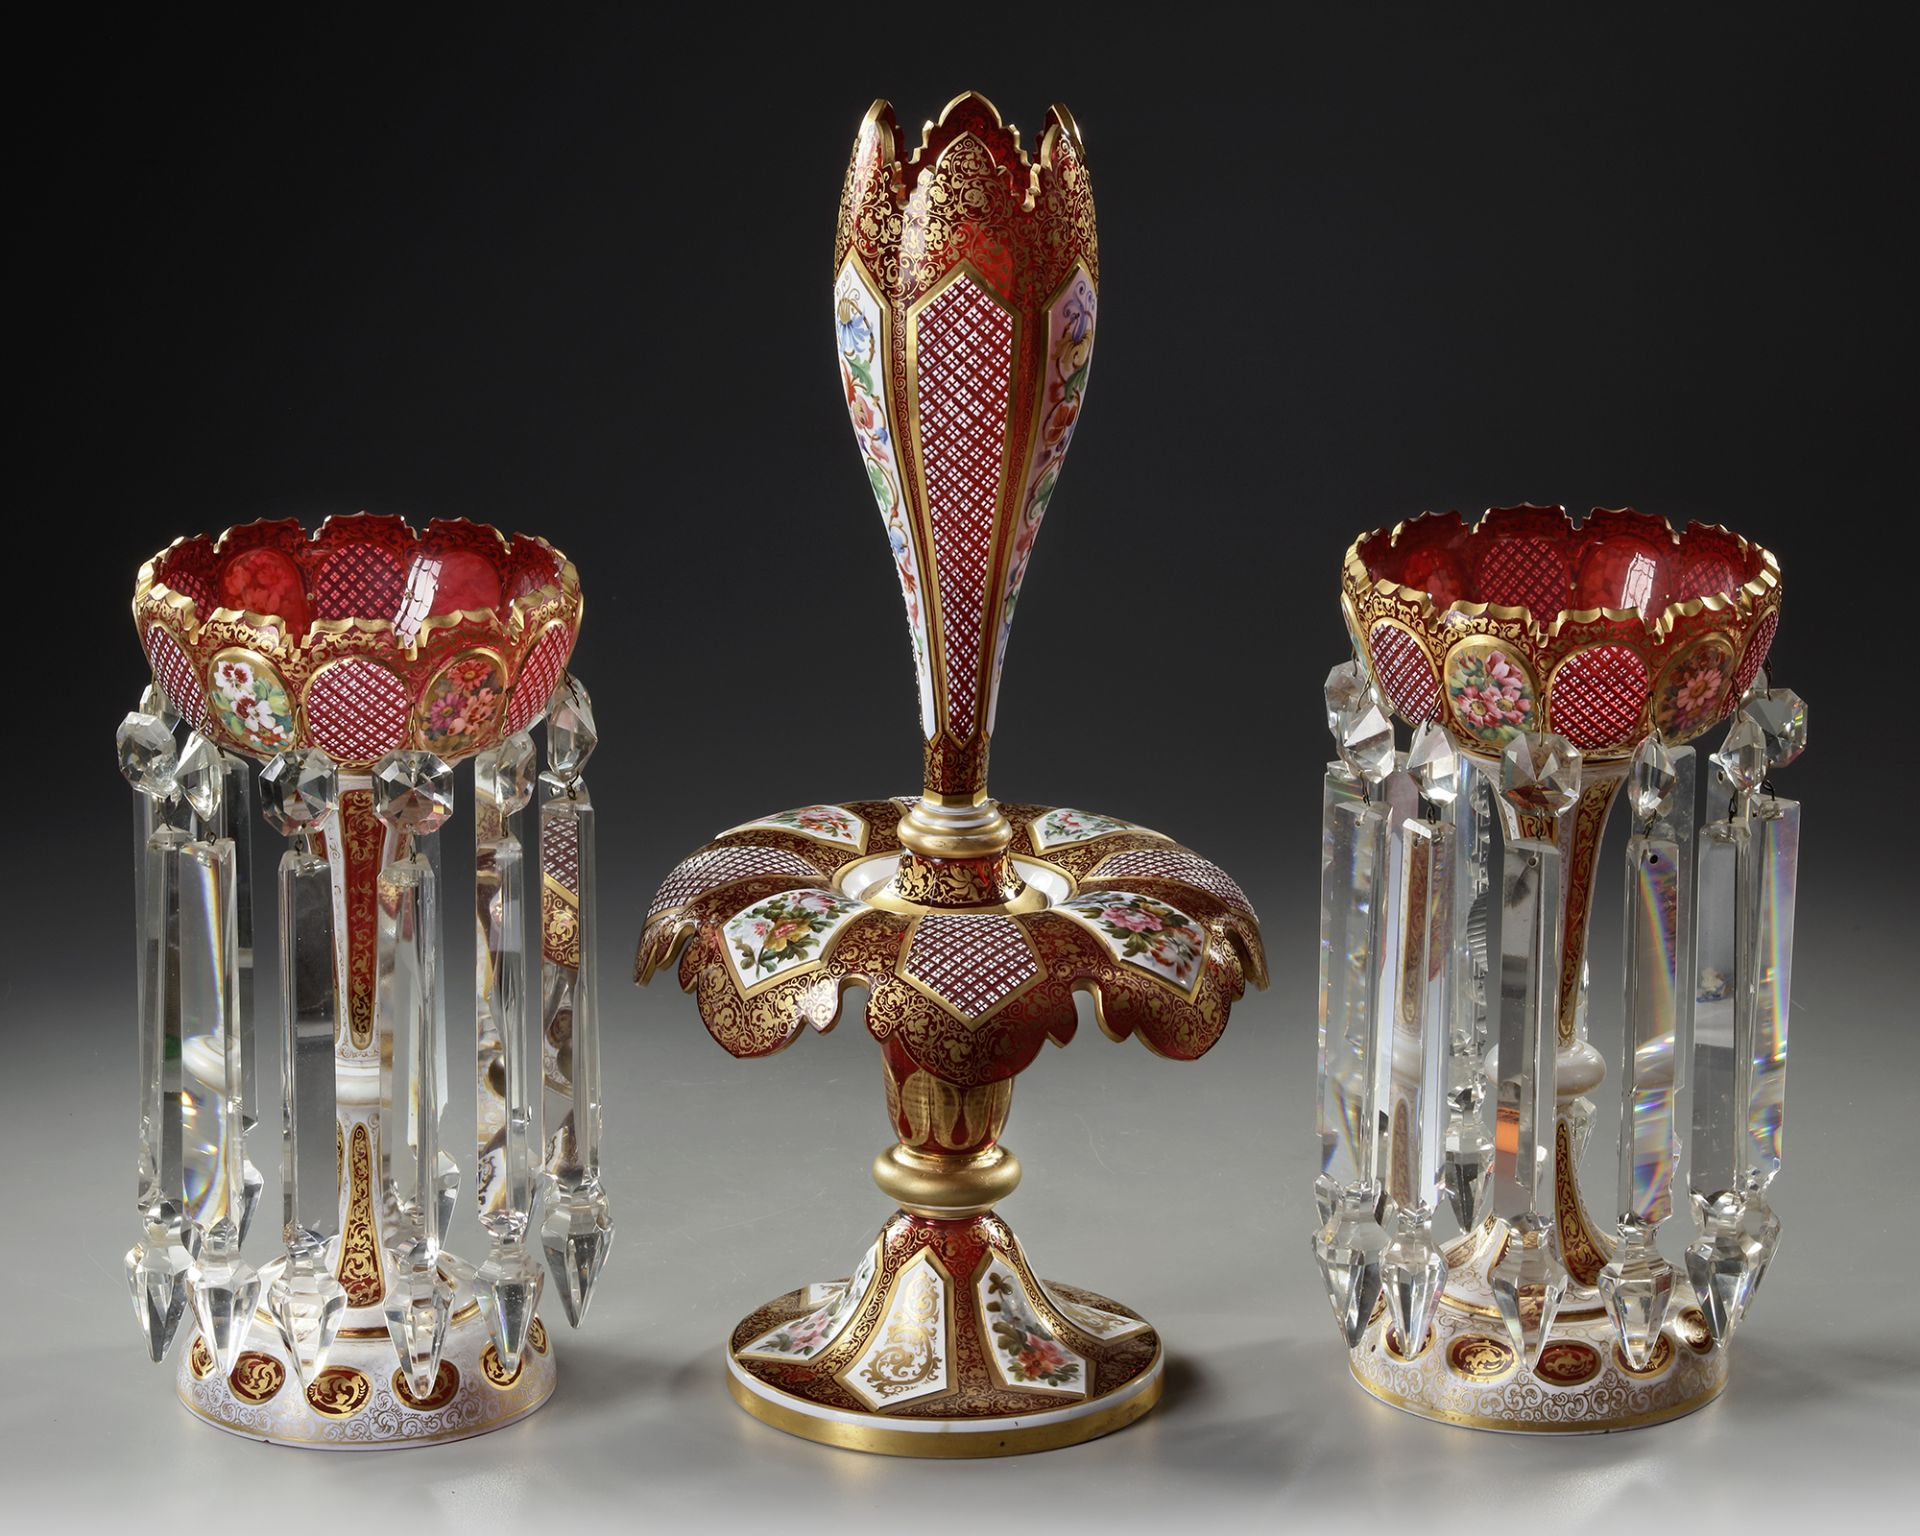 A BOHEMIAN CRYSTAL SET, LATE 19TH CENTURY - Image 2 of 3